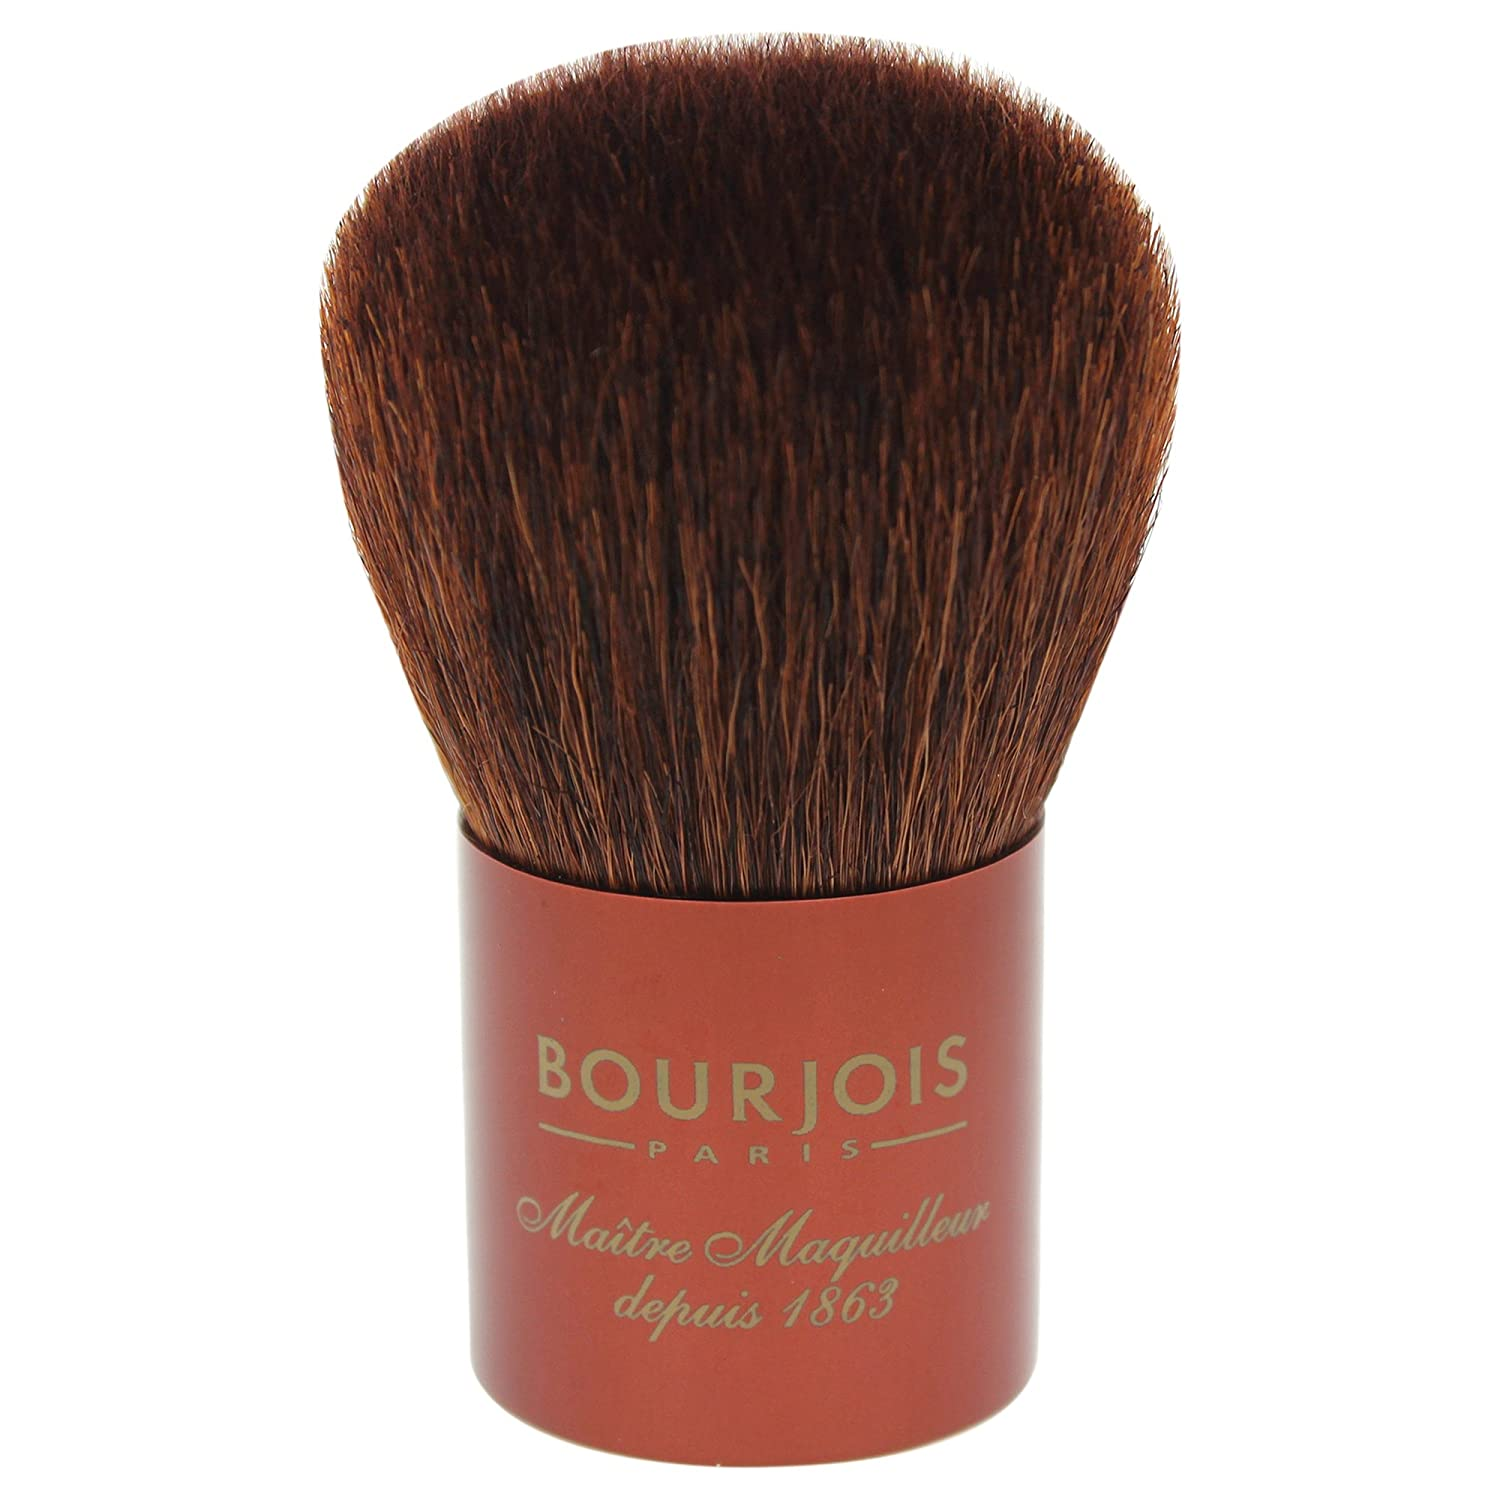 Bourjois Powder Makeup Brush 350503